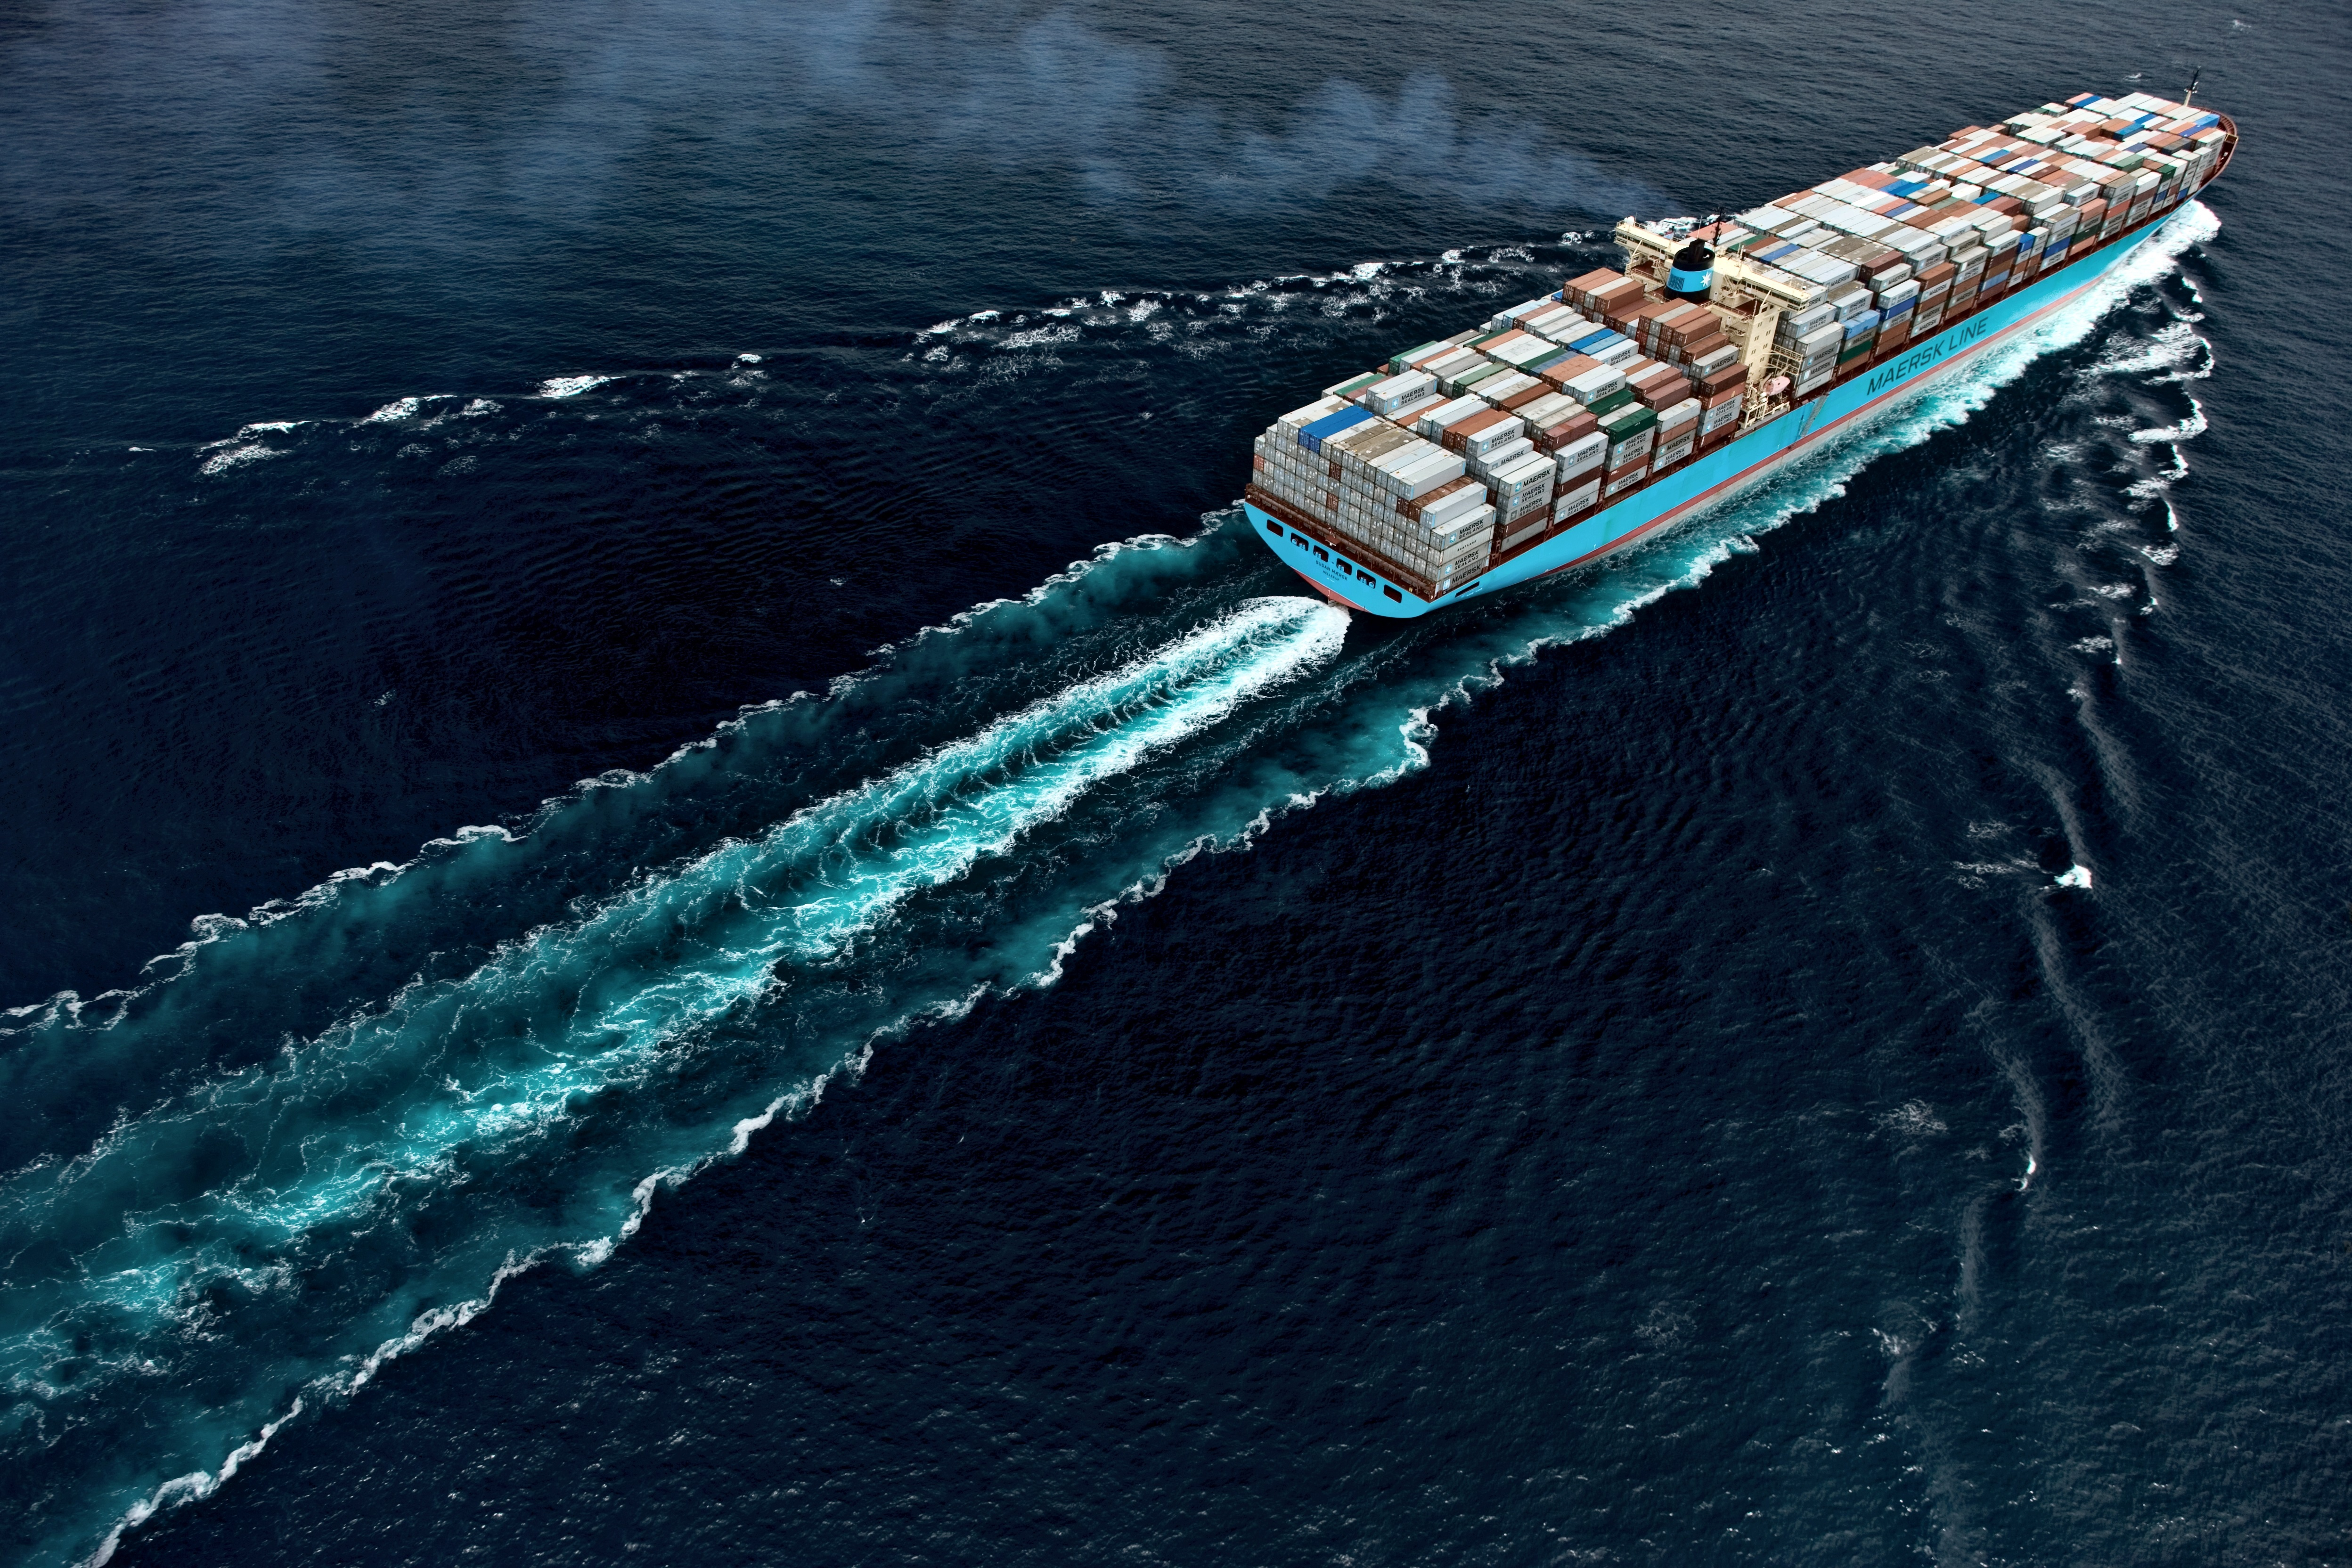 Over_Maersk_en_content_marketing_in_containerformaat_2.jpg